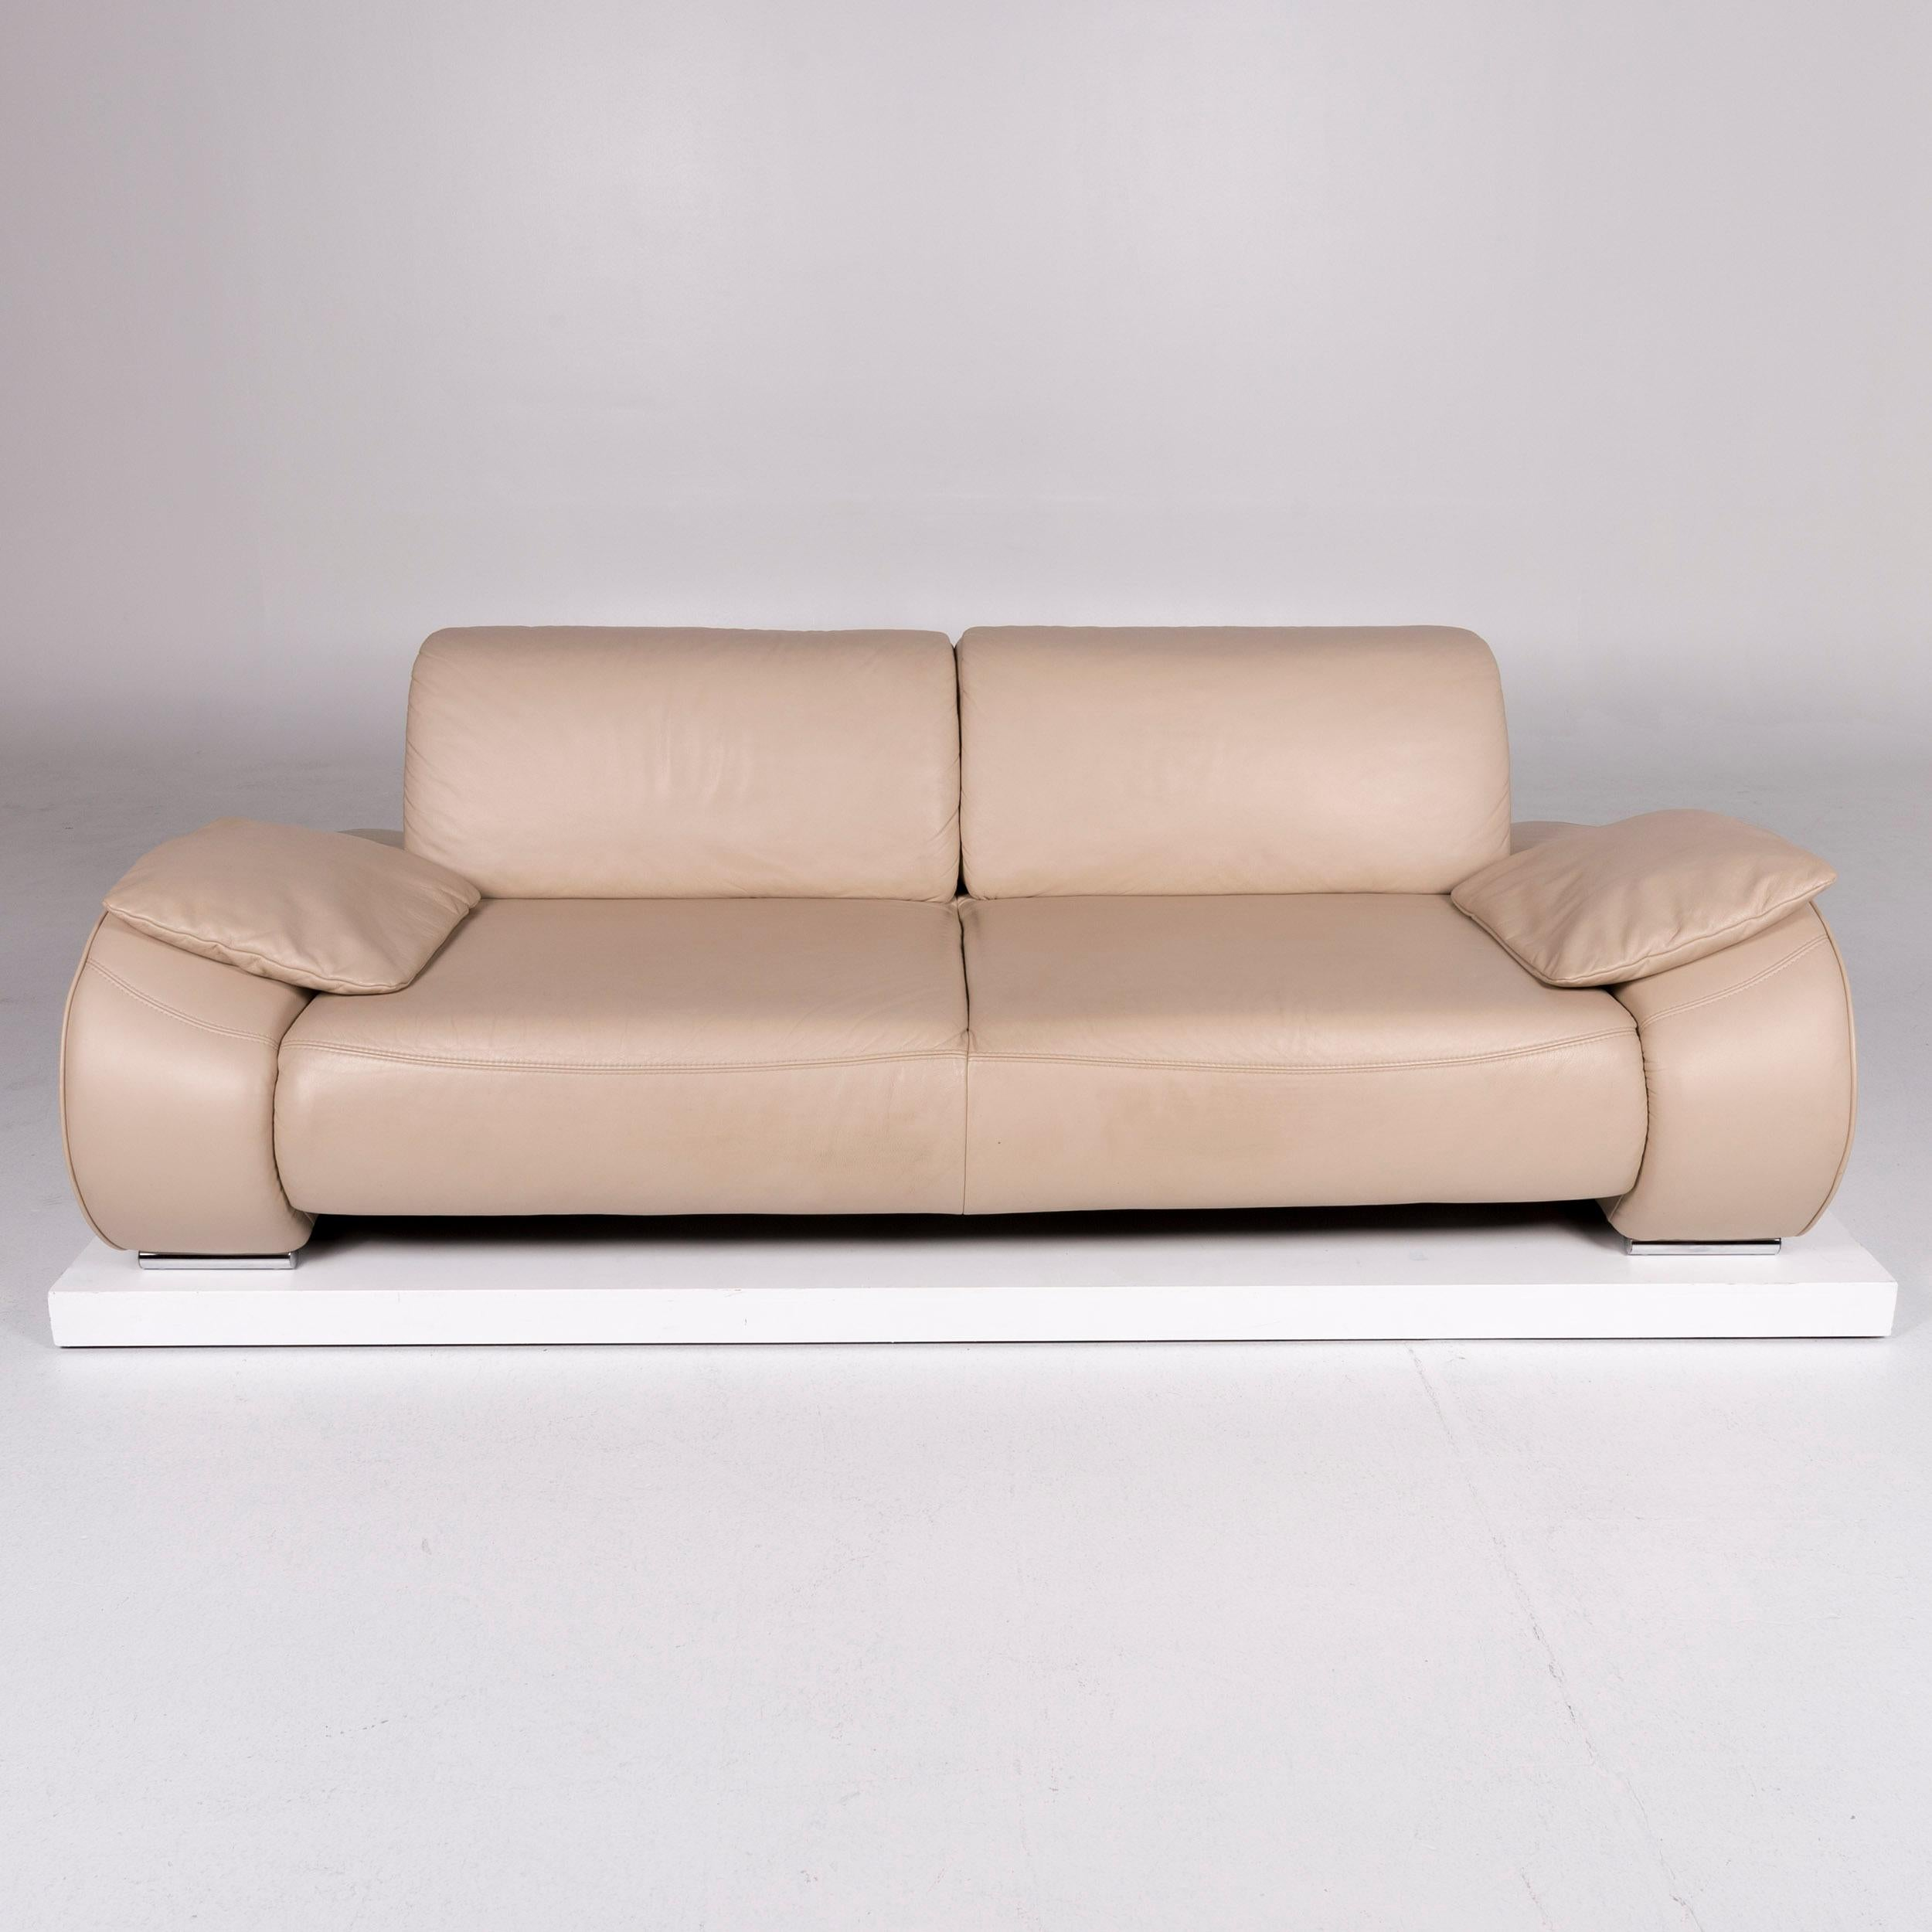 Musterring Designer Leder Sofa Beige Dreisitzer For Sale